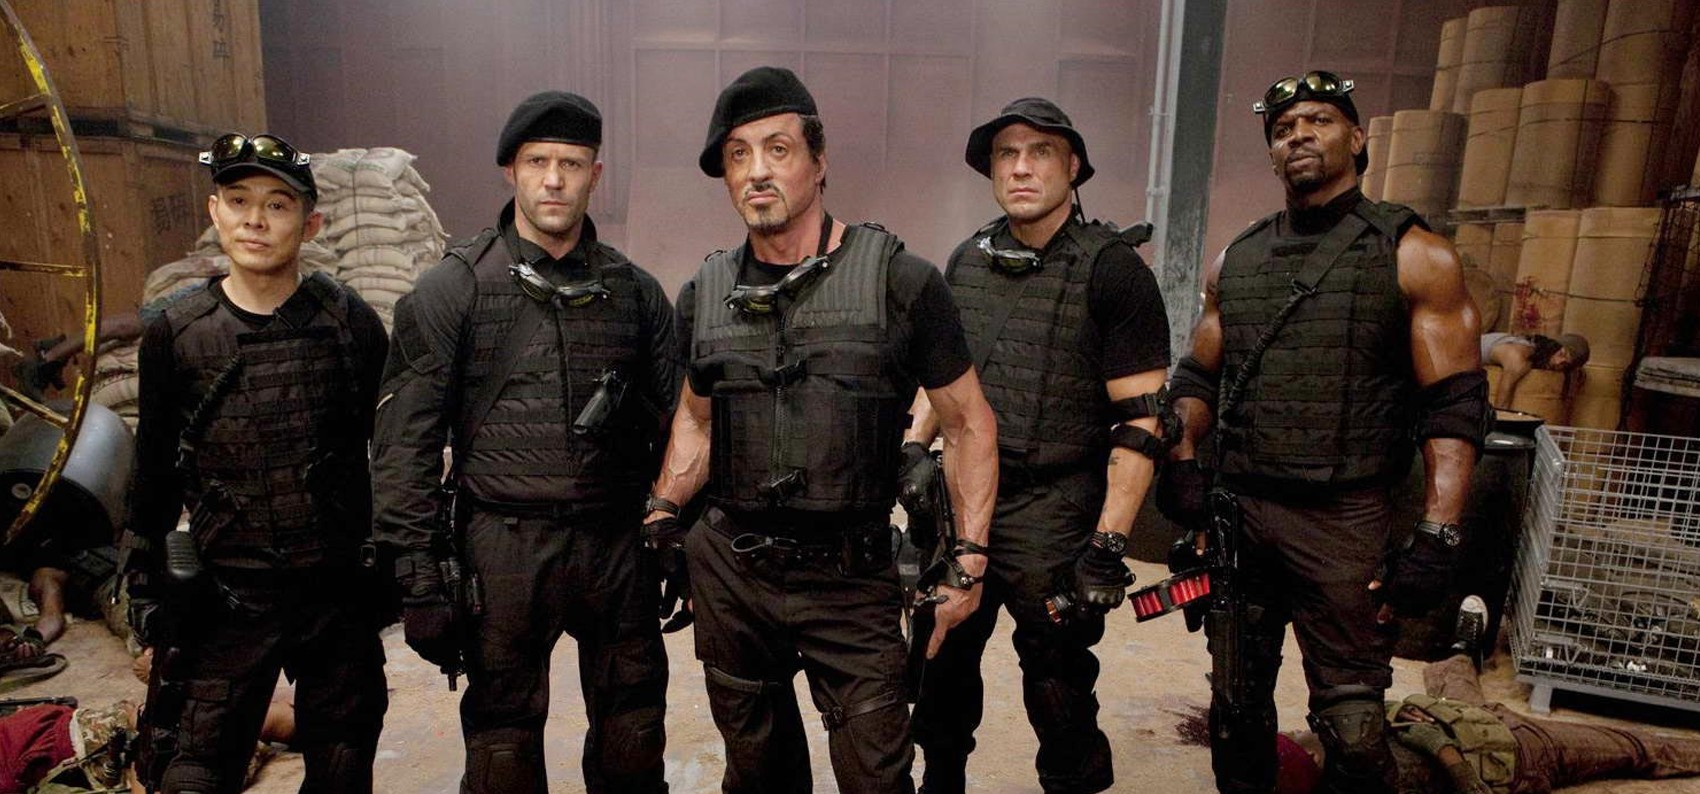 the expendables 2 cast - photo #18